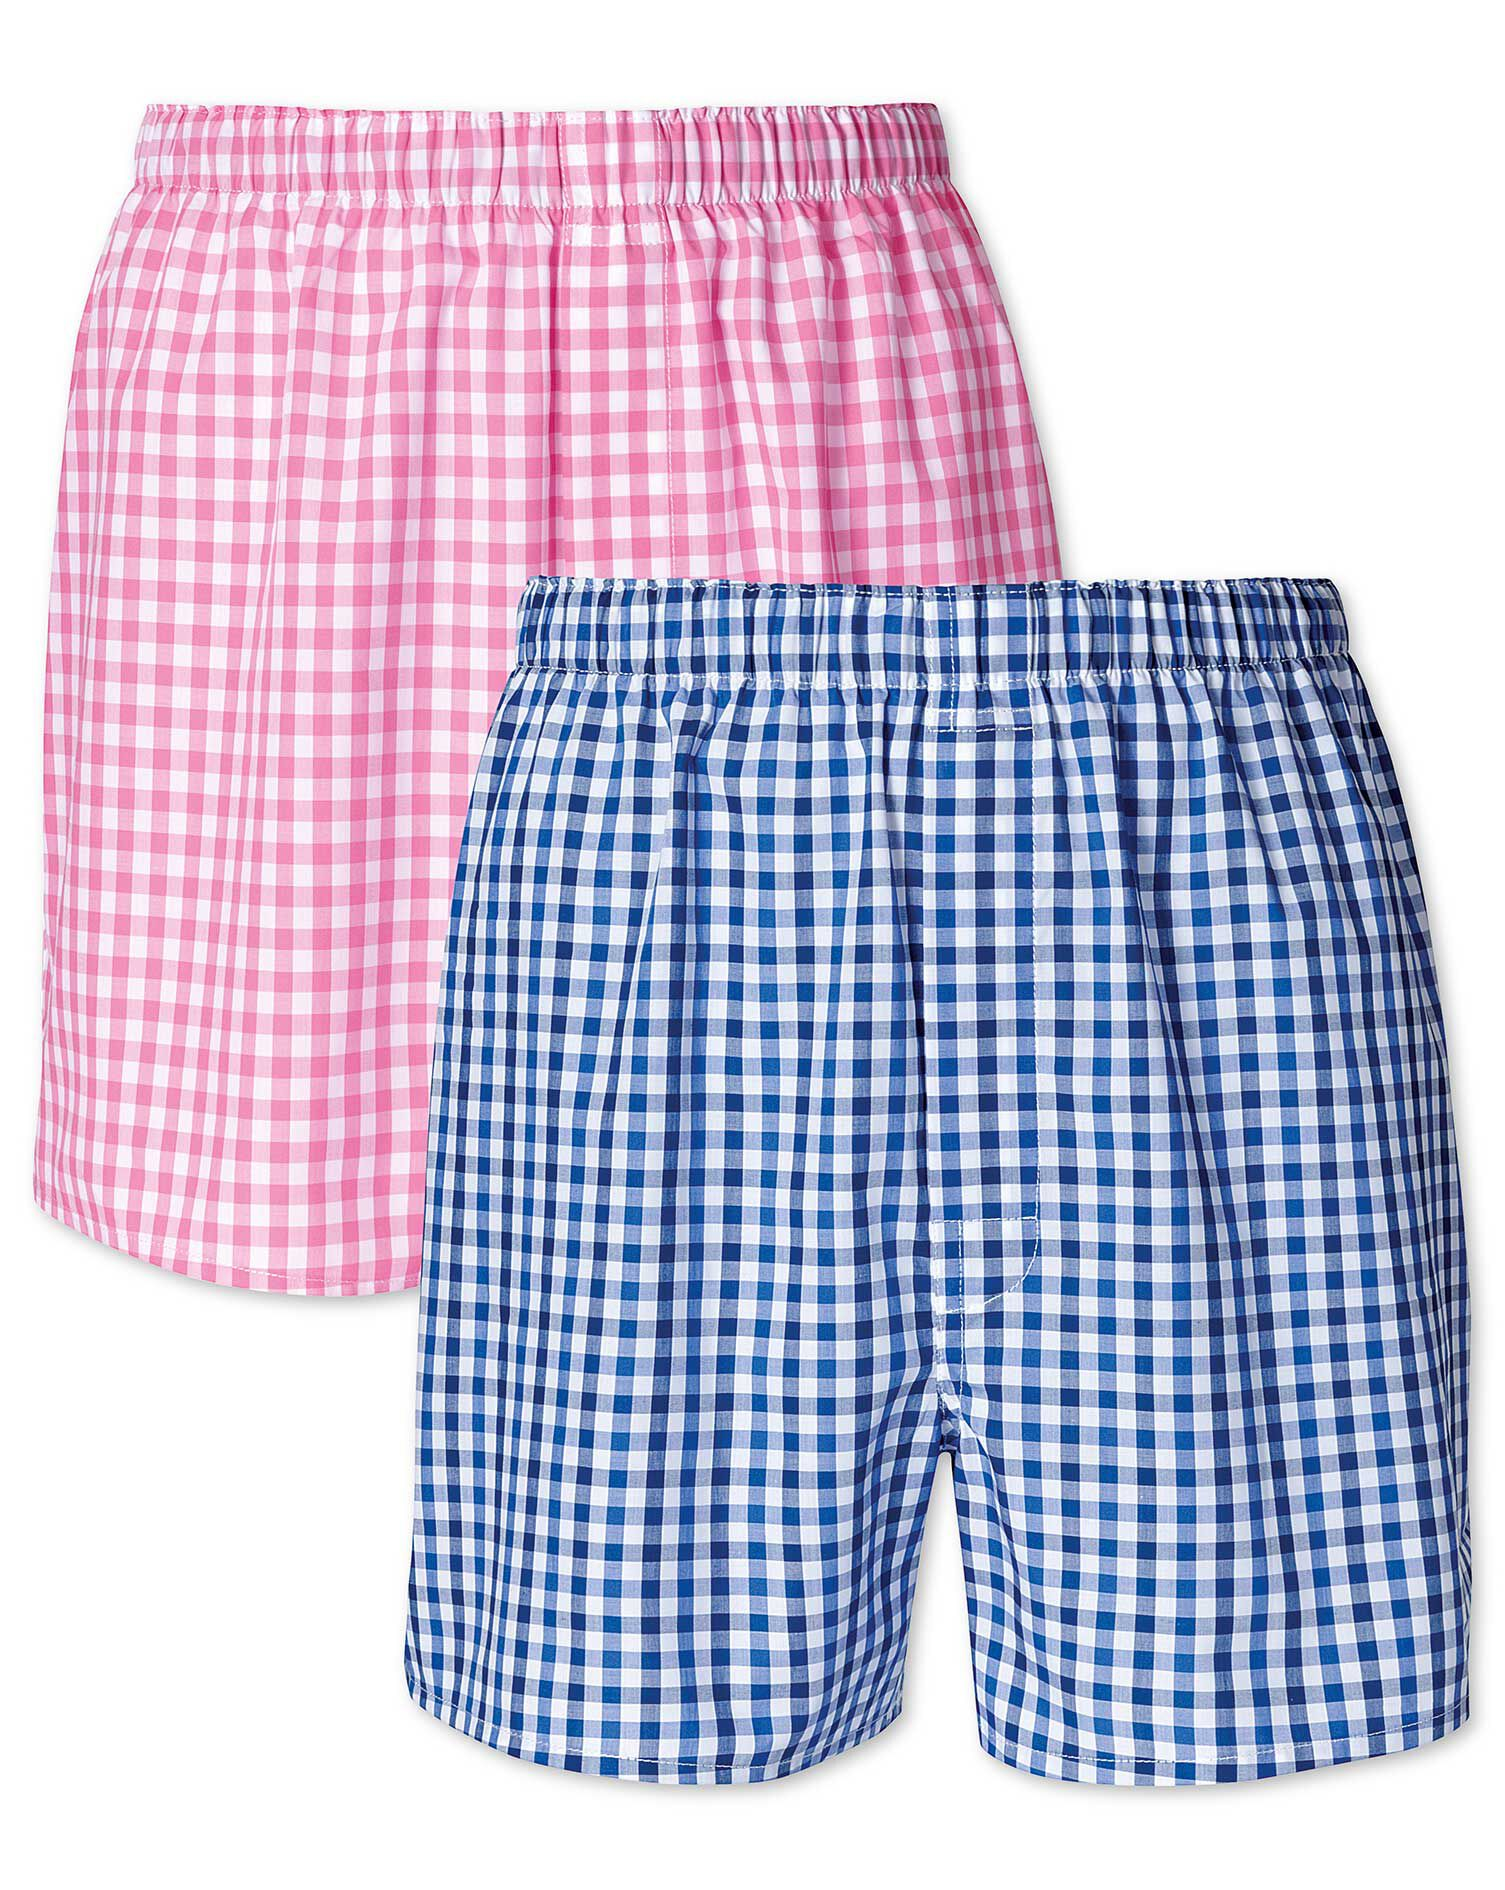 Pink and Blue Gingham 2 Pack Boxers Size XS by Charles Tyrwhitt